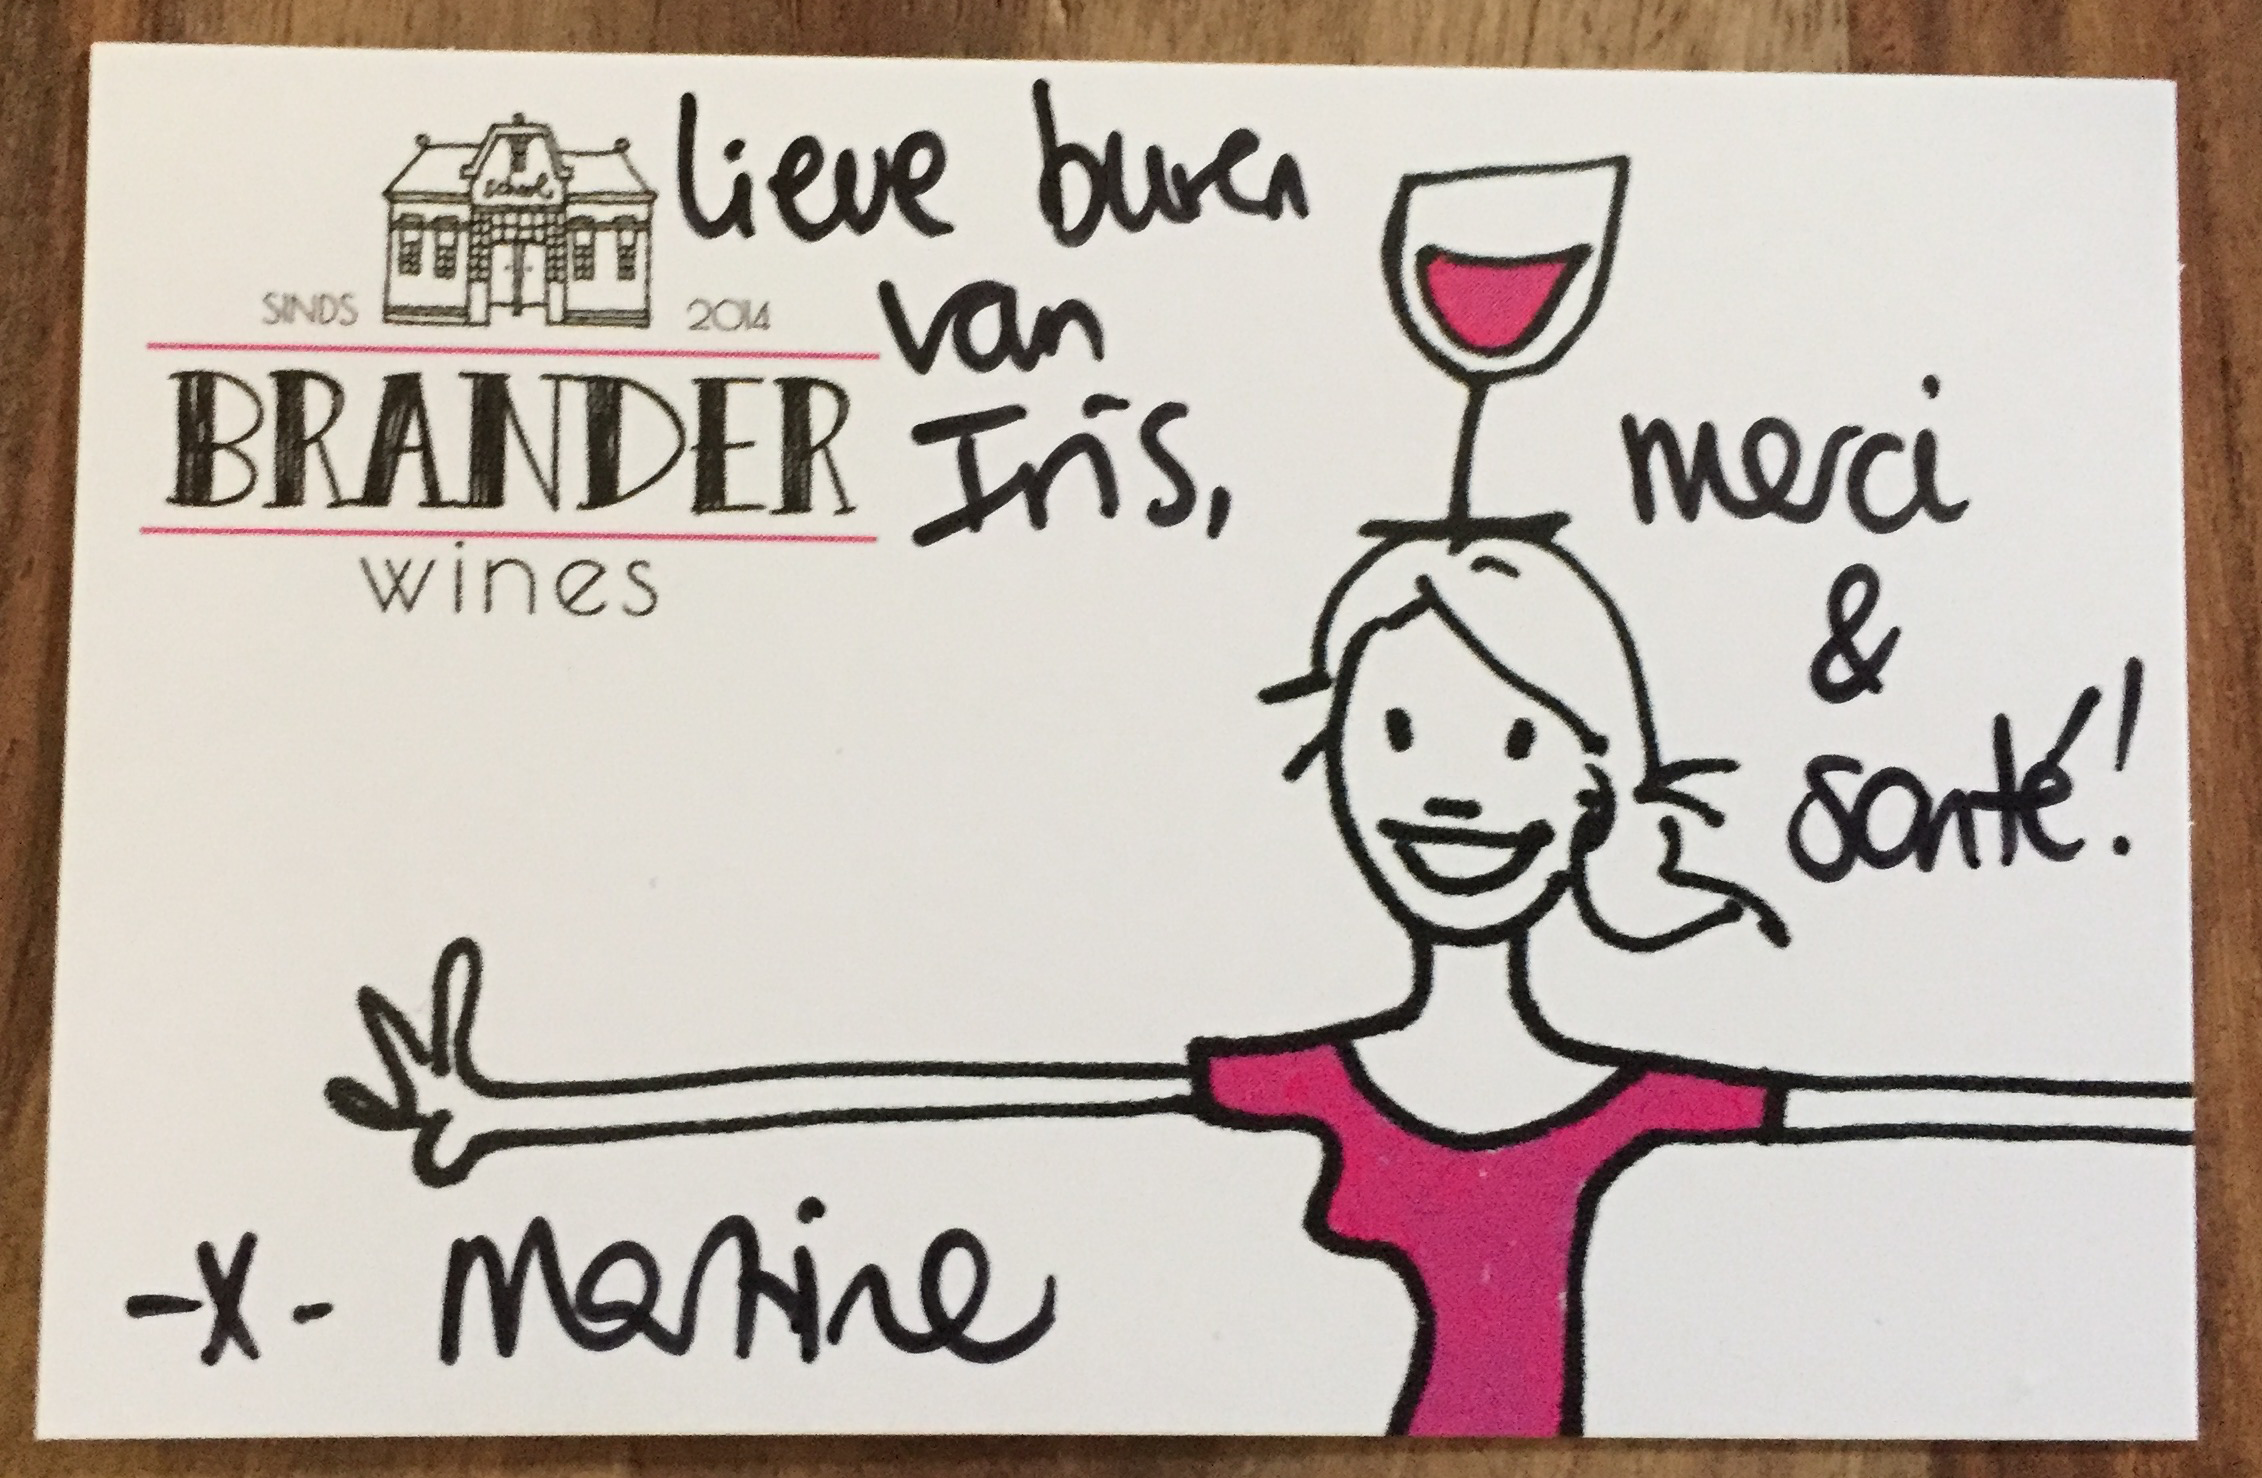 brander wines klantbeleving